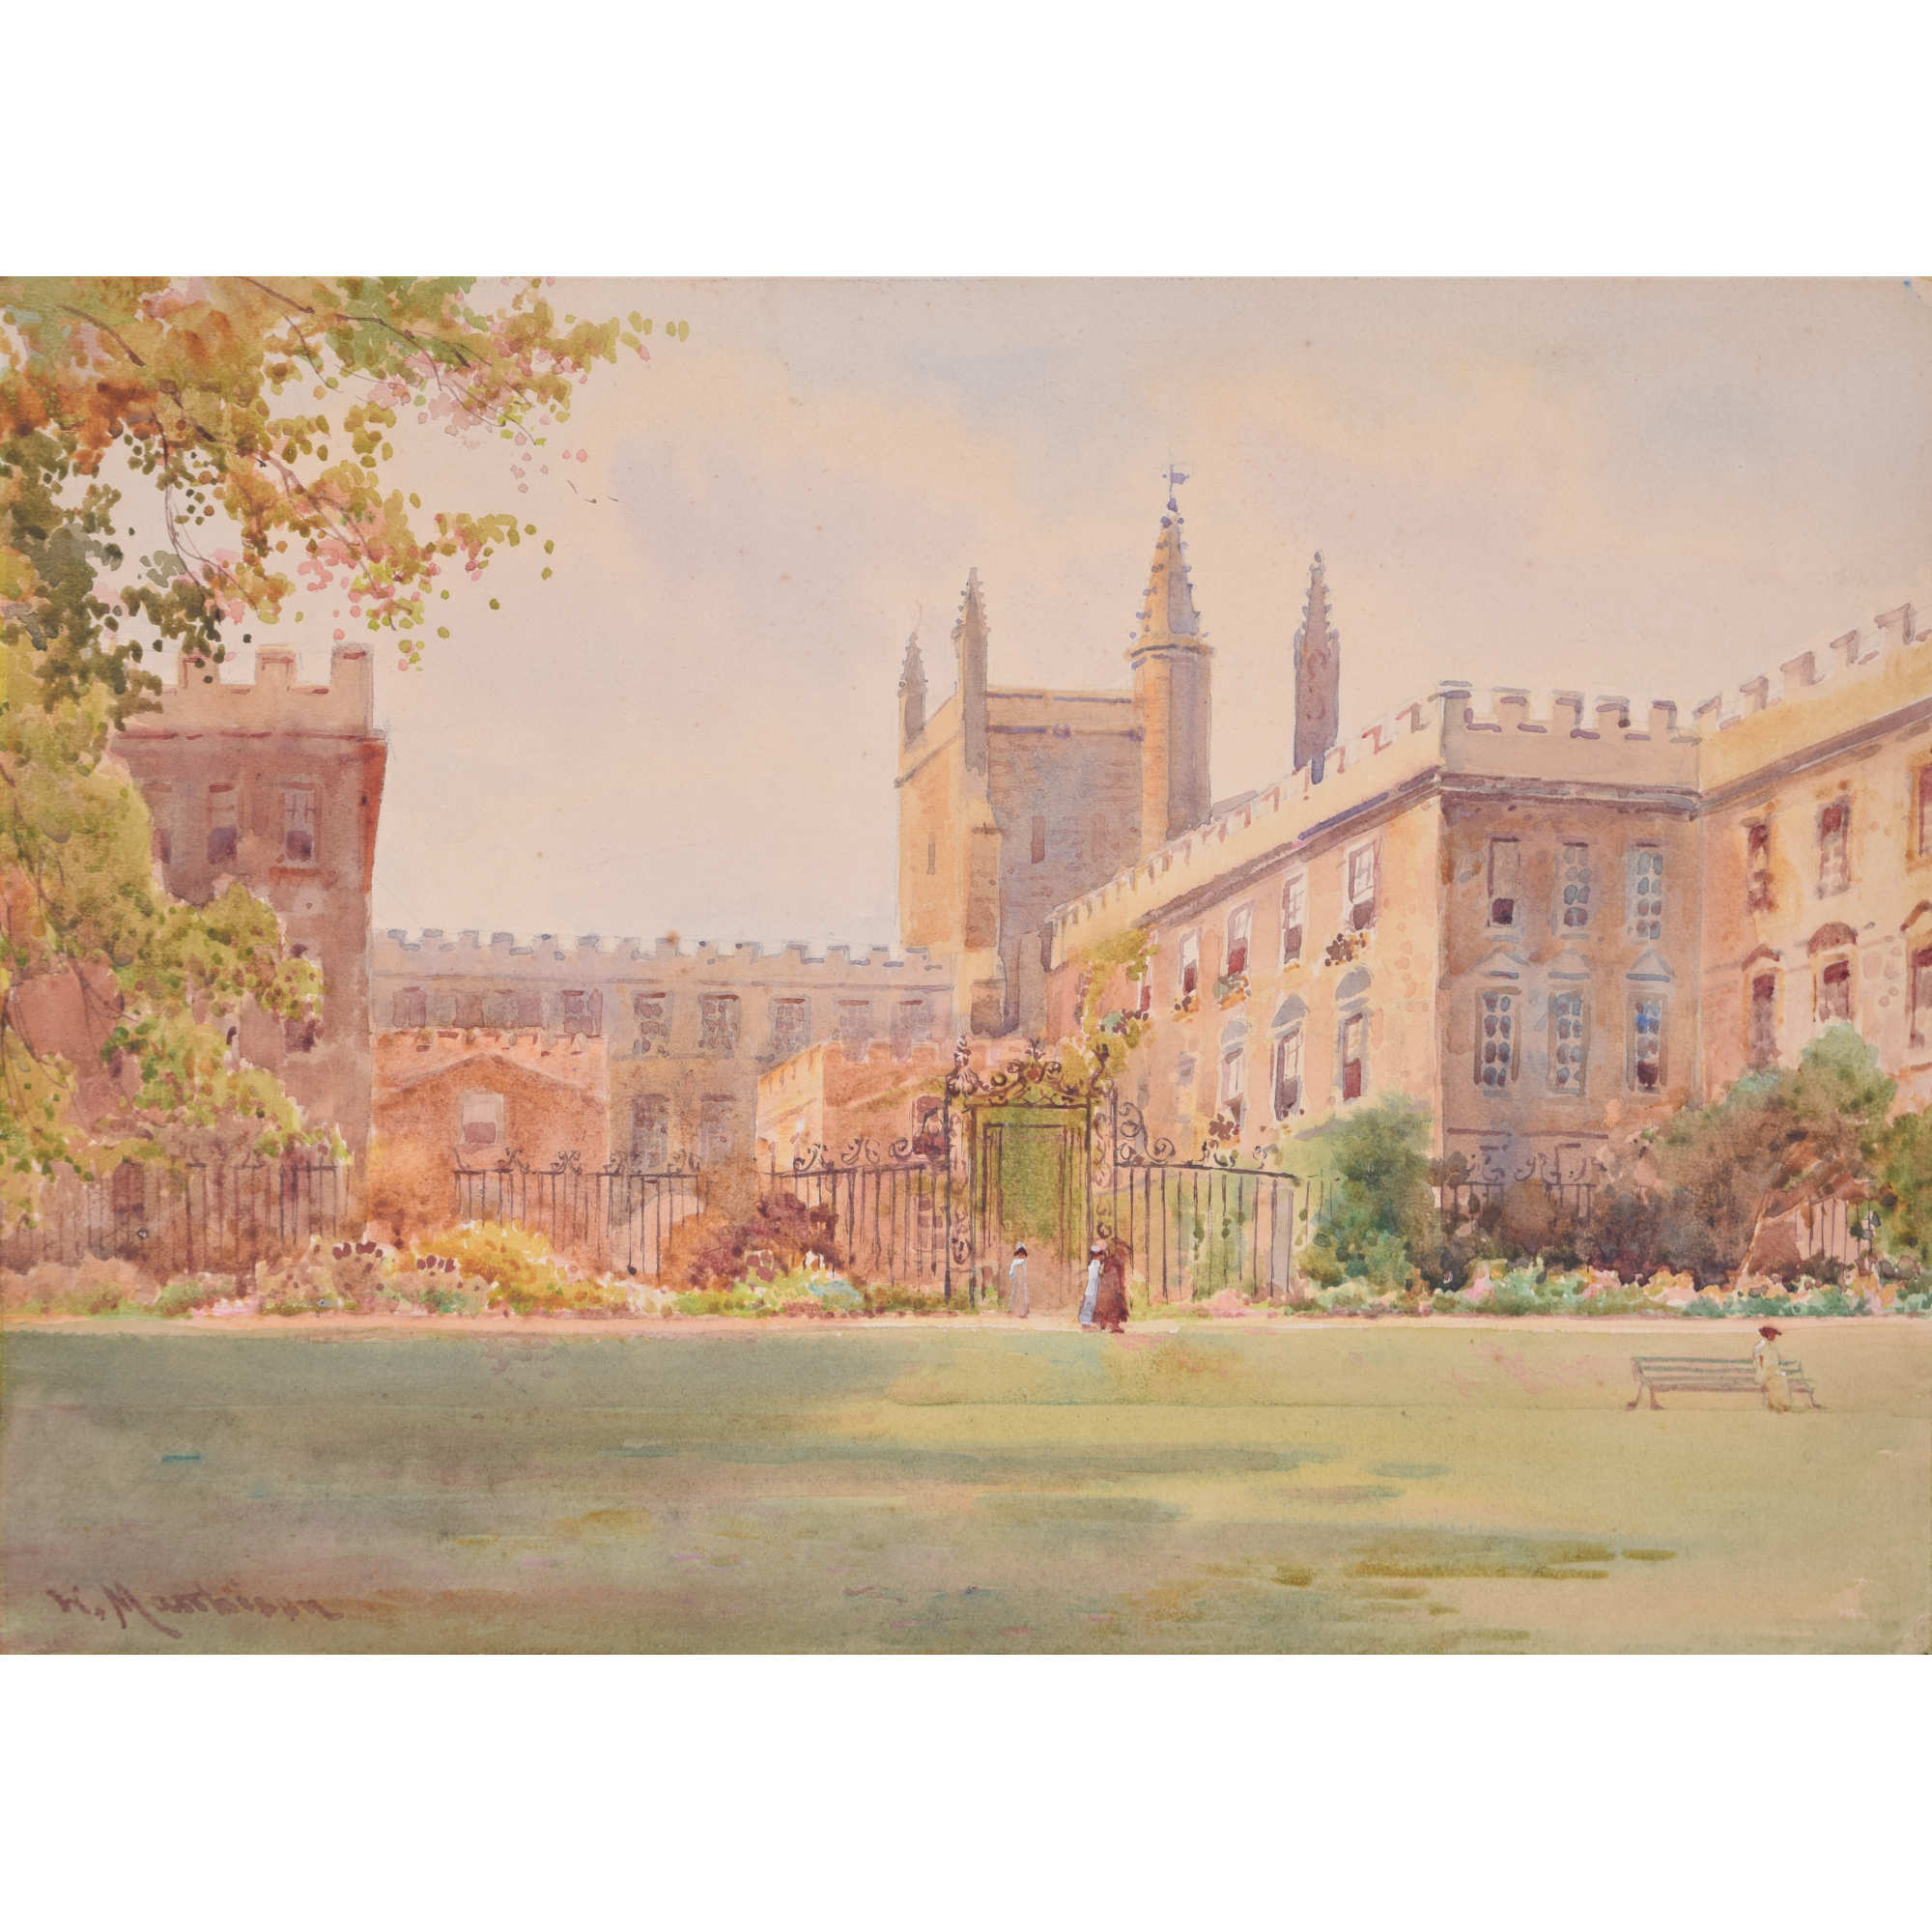 William Matthison New College Oxford watercolour